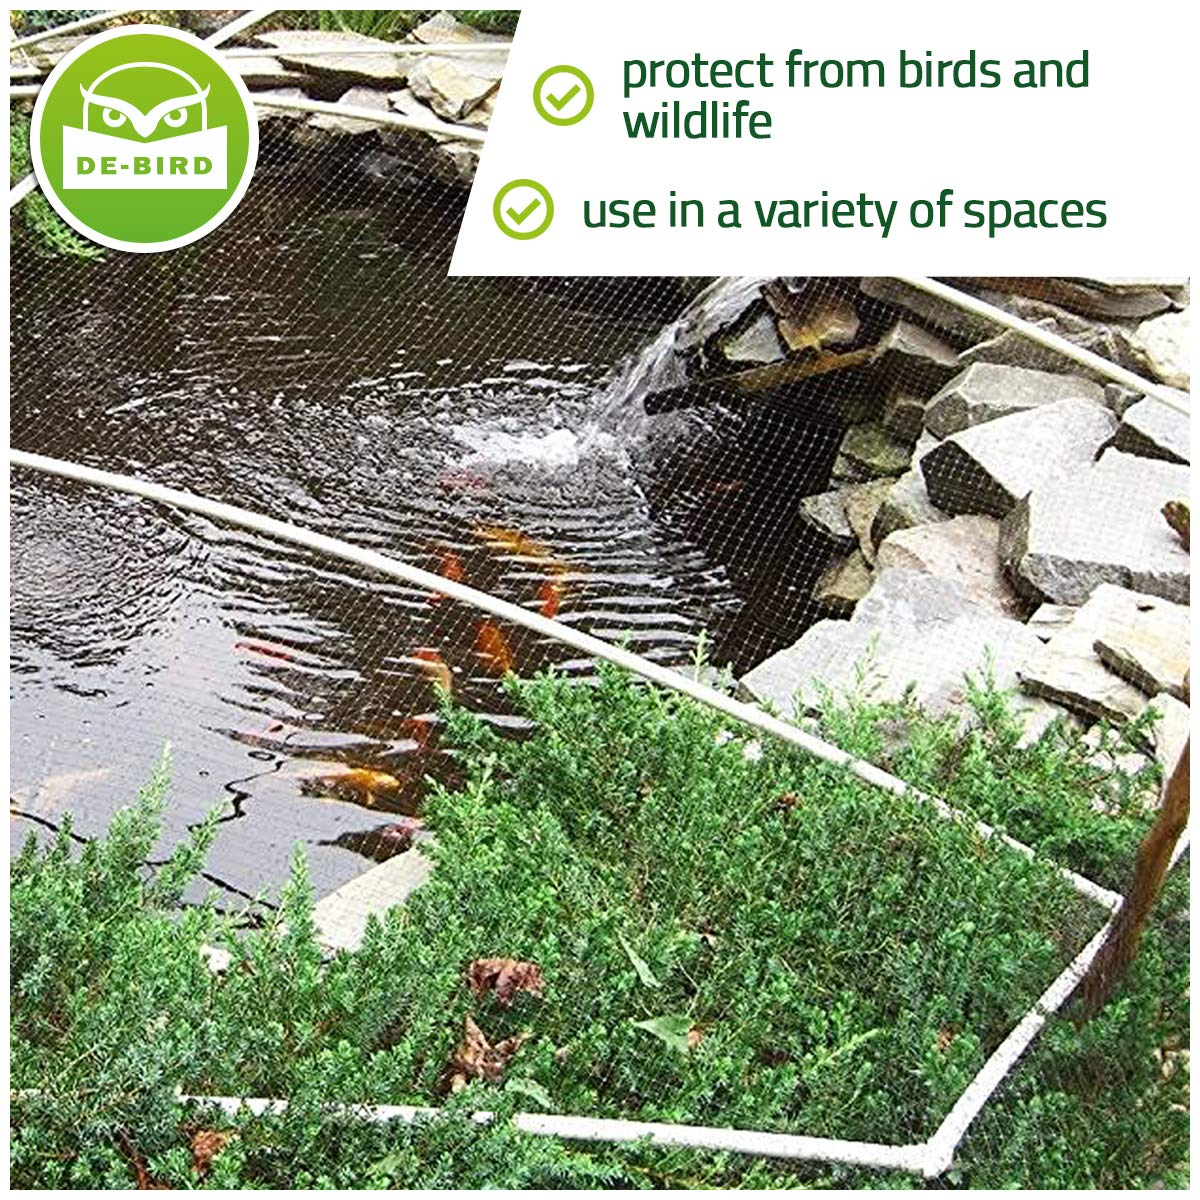 Bird Netting [Heavy Duty] Protect Plants and Fruit Trees - Extra Strong Garden Net is Easy to Use, Doesn't Tangle and Reusable - Lasting Protection Against Birds, Deer and Other Pests (7.5x65 Foot) by De-Bird (Image #4)